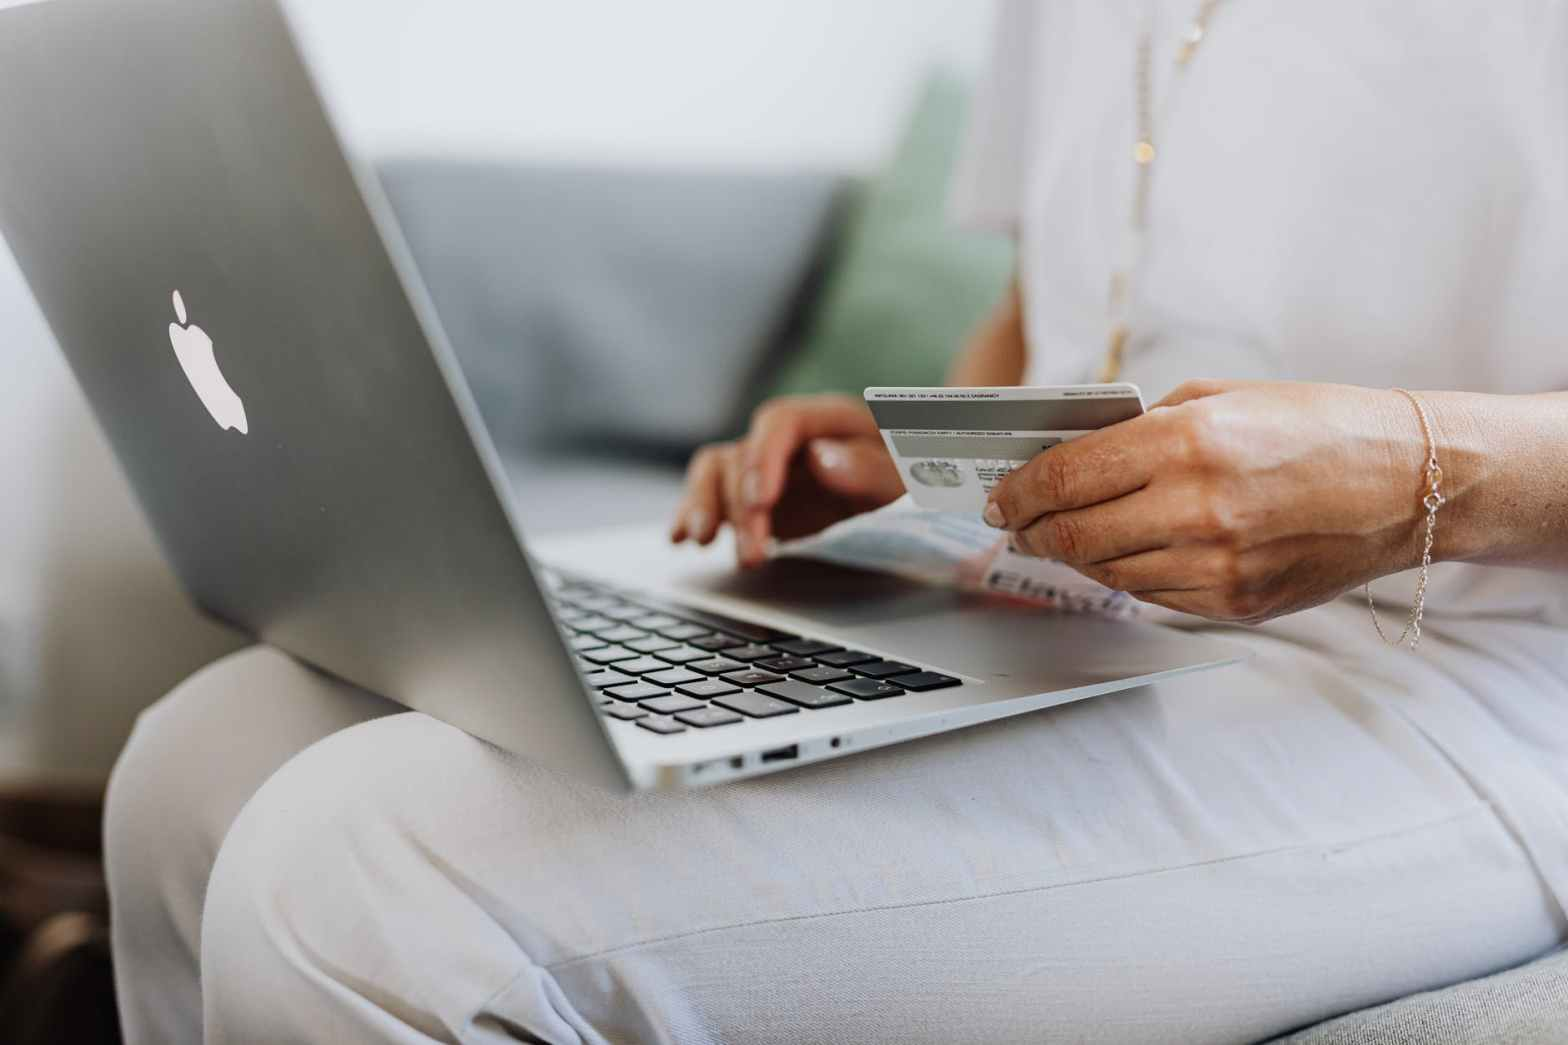 improve online sales: consumer on laptop with credit card in hand